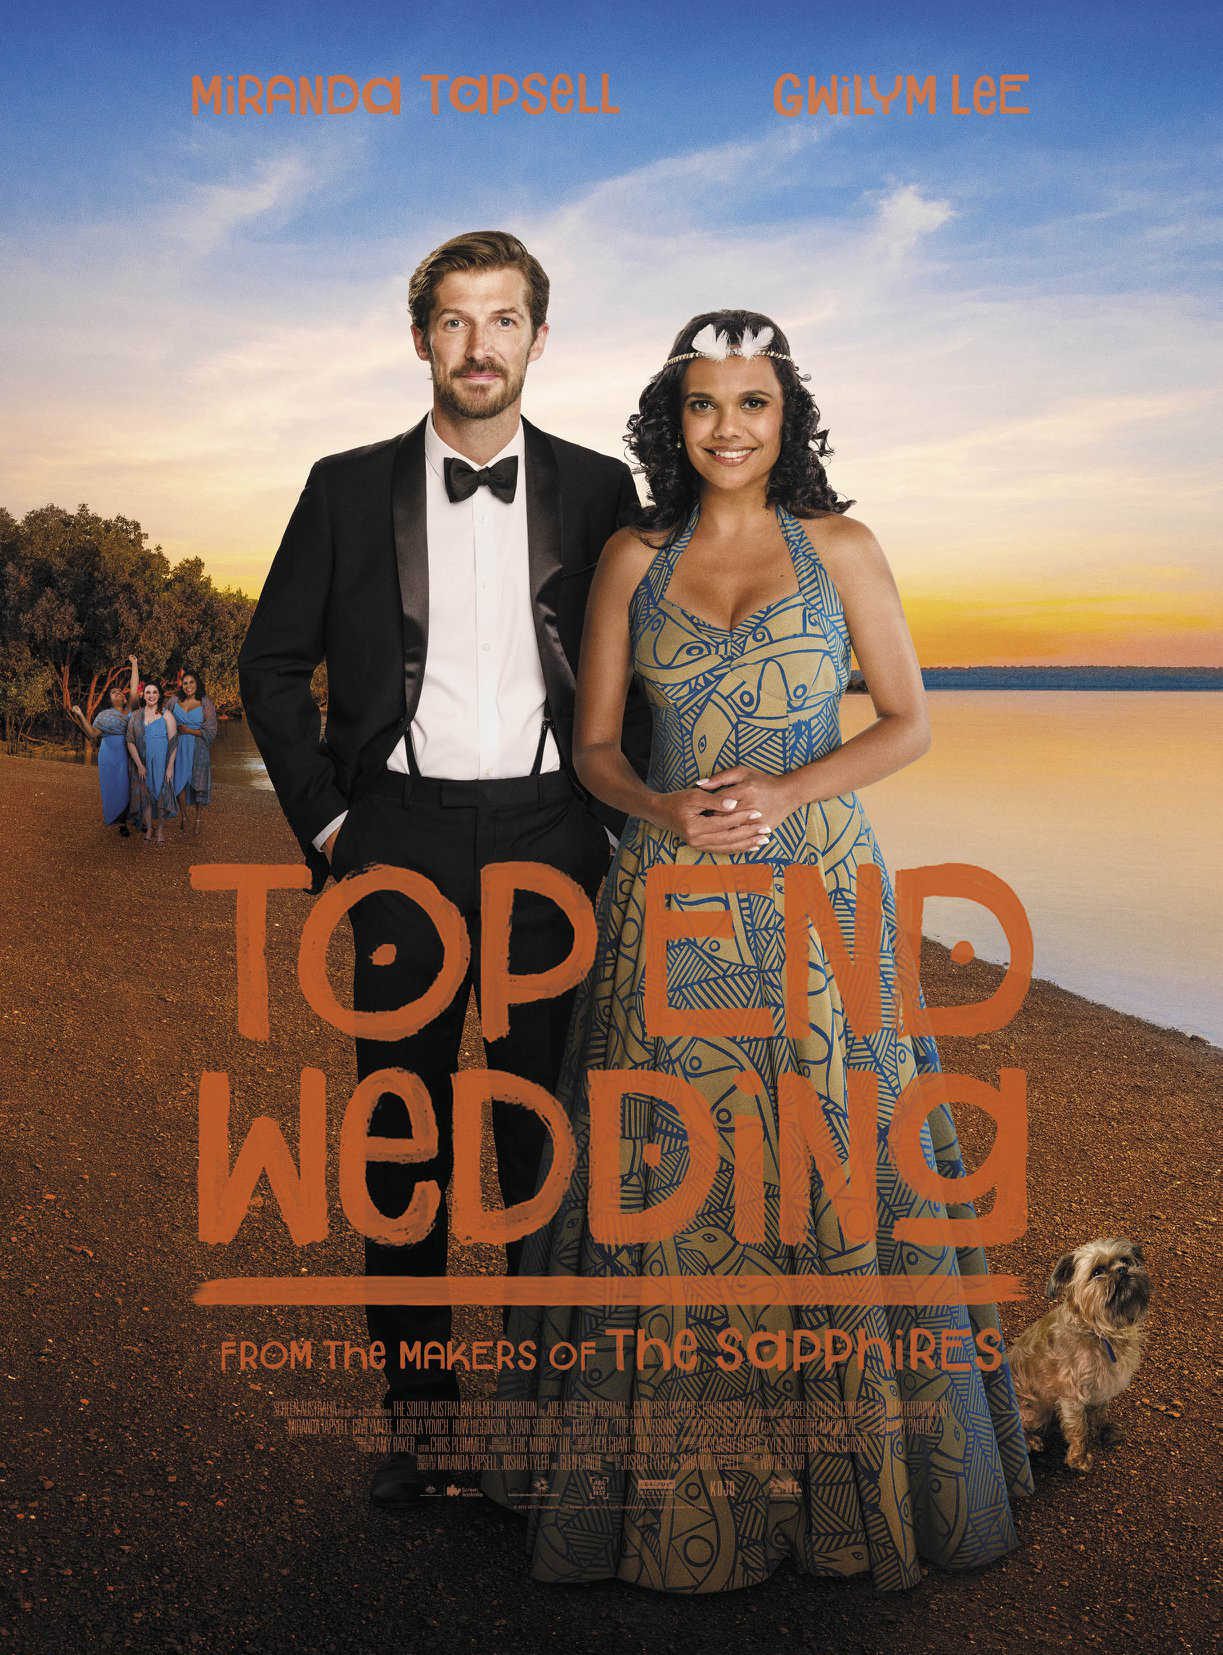 Top End Wedding  (2019) - Directed by: Wayne BlairStarring: Gwilym Lee, Miranda Tapsell, Kerry Fox, Ursula YovichRated: NR (TMM Suggested: PG-13 for Some Sexual Humor)Running Time: 1 h 43 m TMM Score: 2.5 stars out of 5STRENGTHS: Cultural Insights, Cinematography WEAKNESSES: Plausibility, Stupid Character Choices, Repeated Jokes